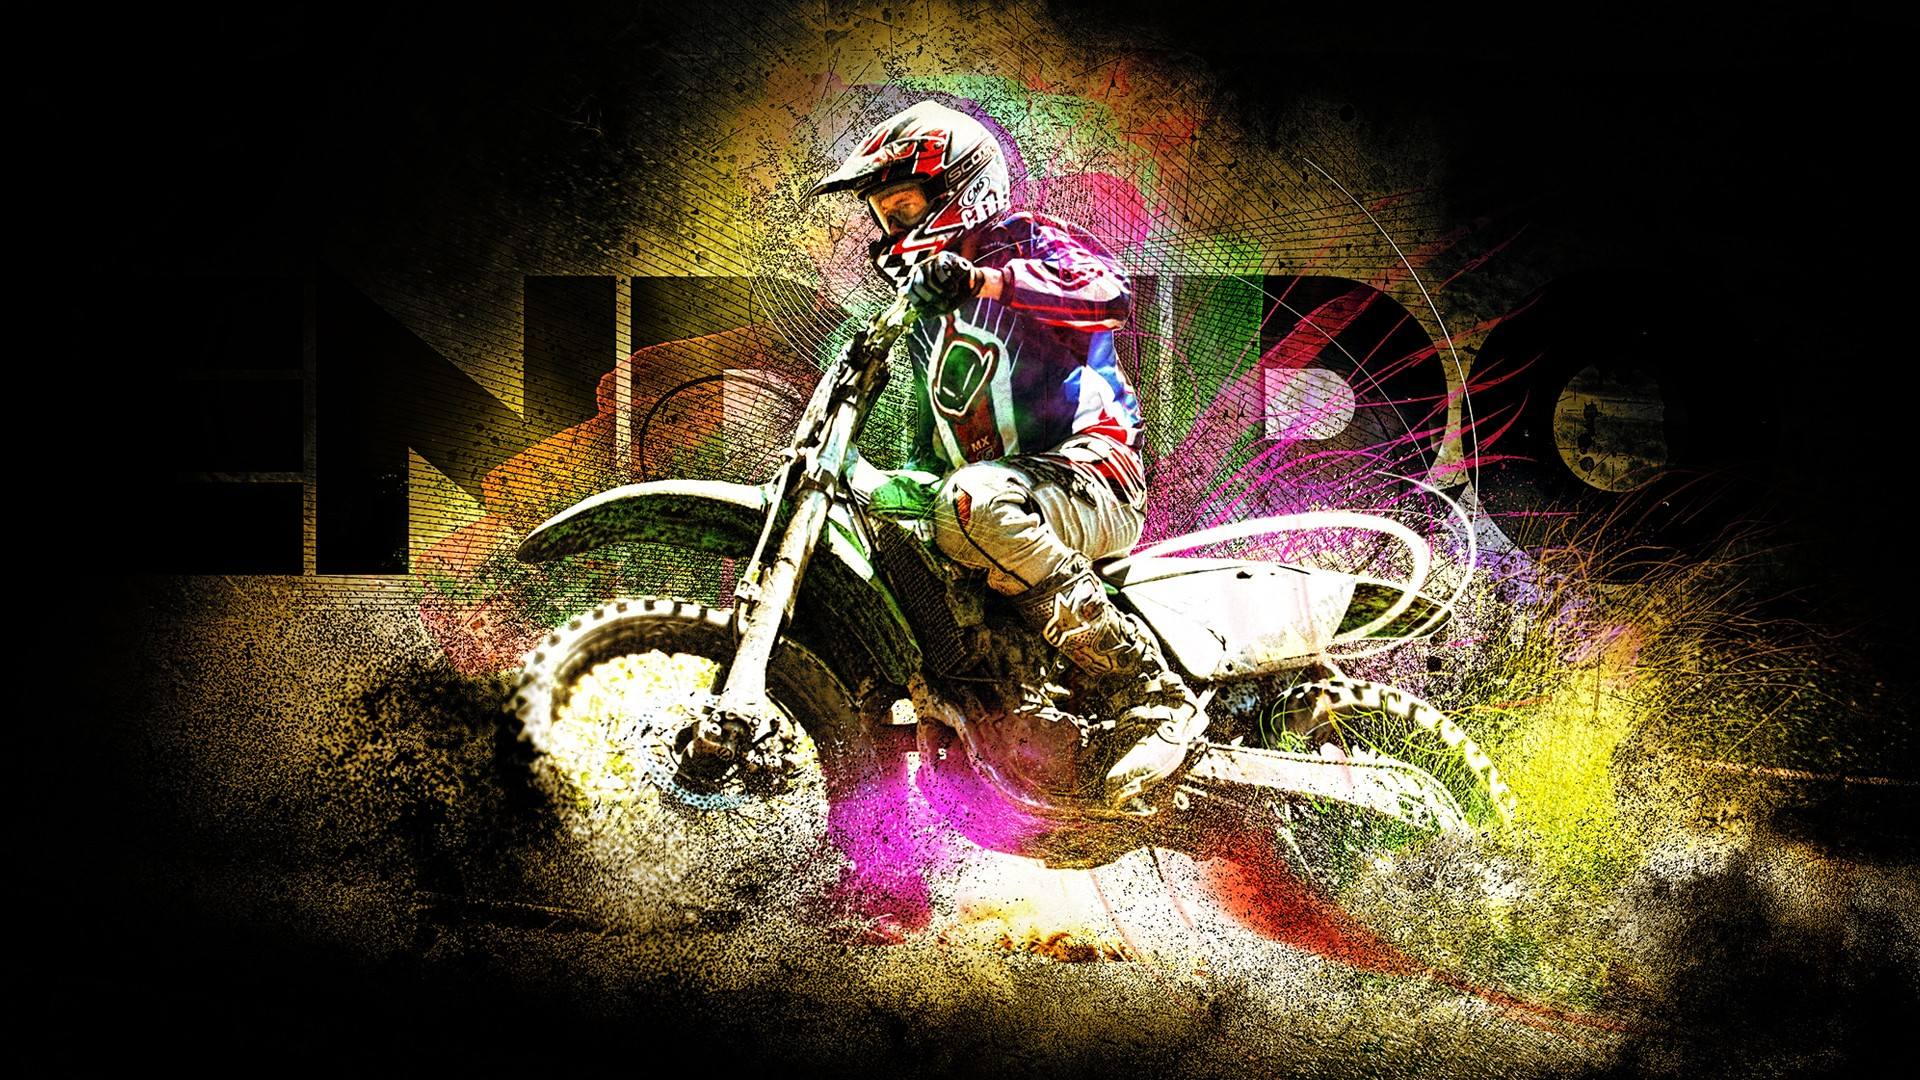 Motocross Hd Wallpapers Widescreen Enduro Racing Wallpapers Hd Wallpapers Id 10422